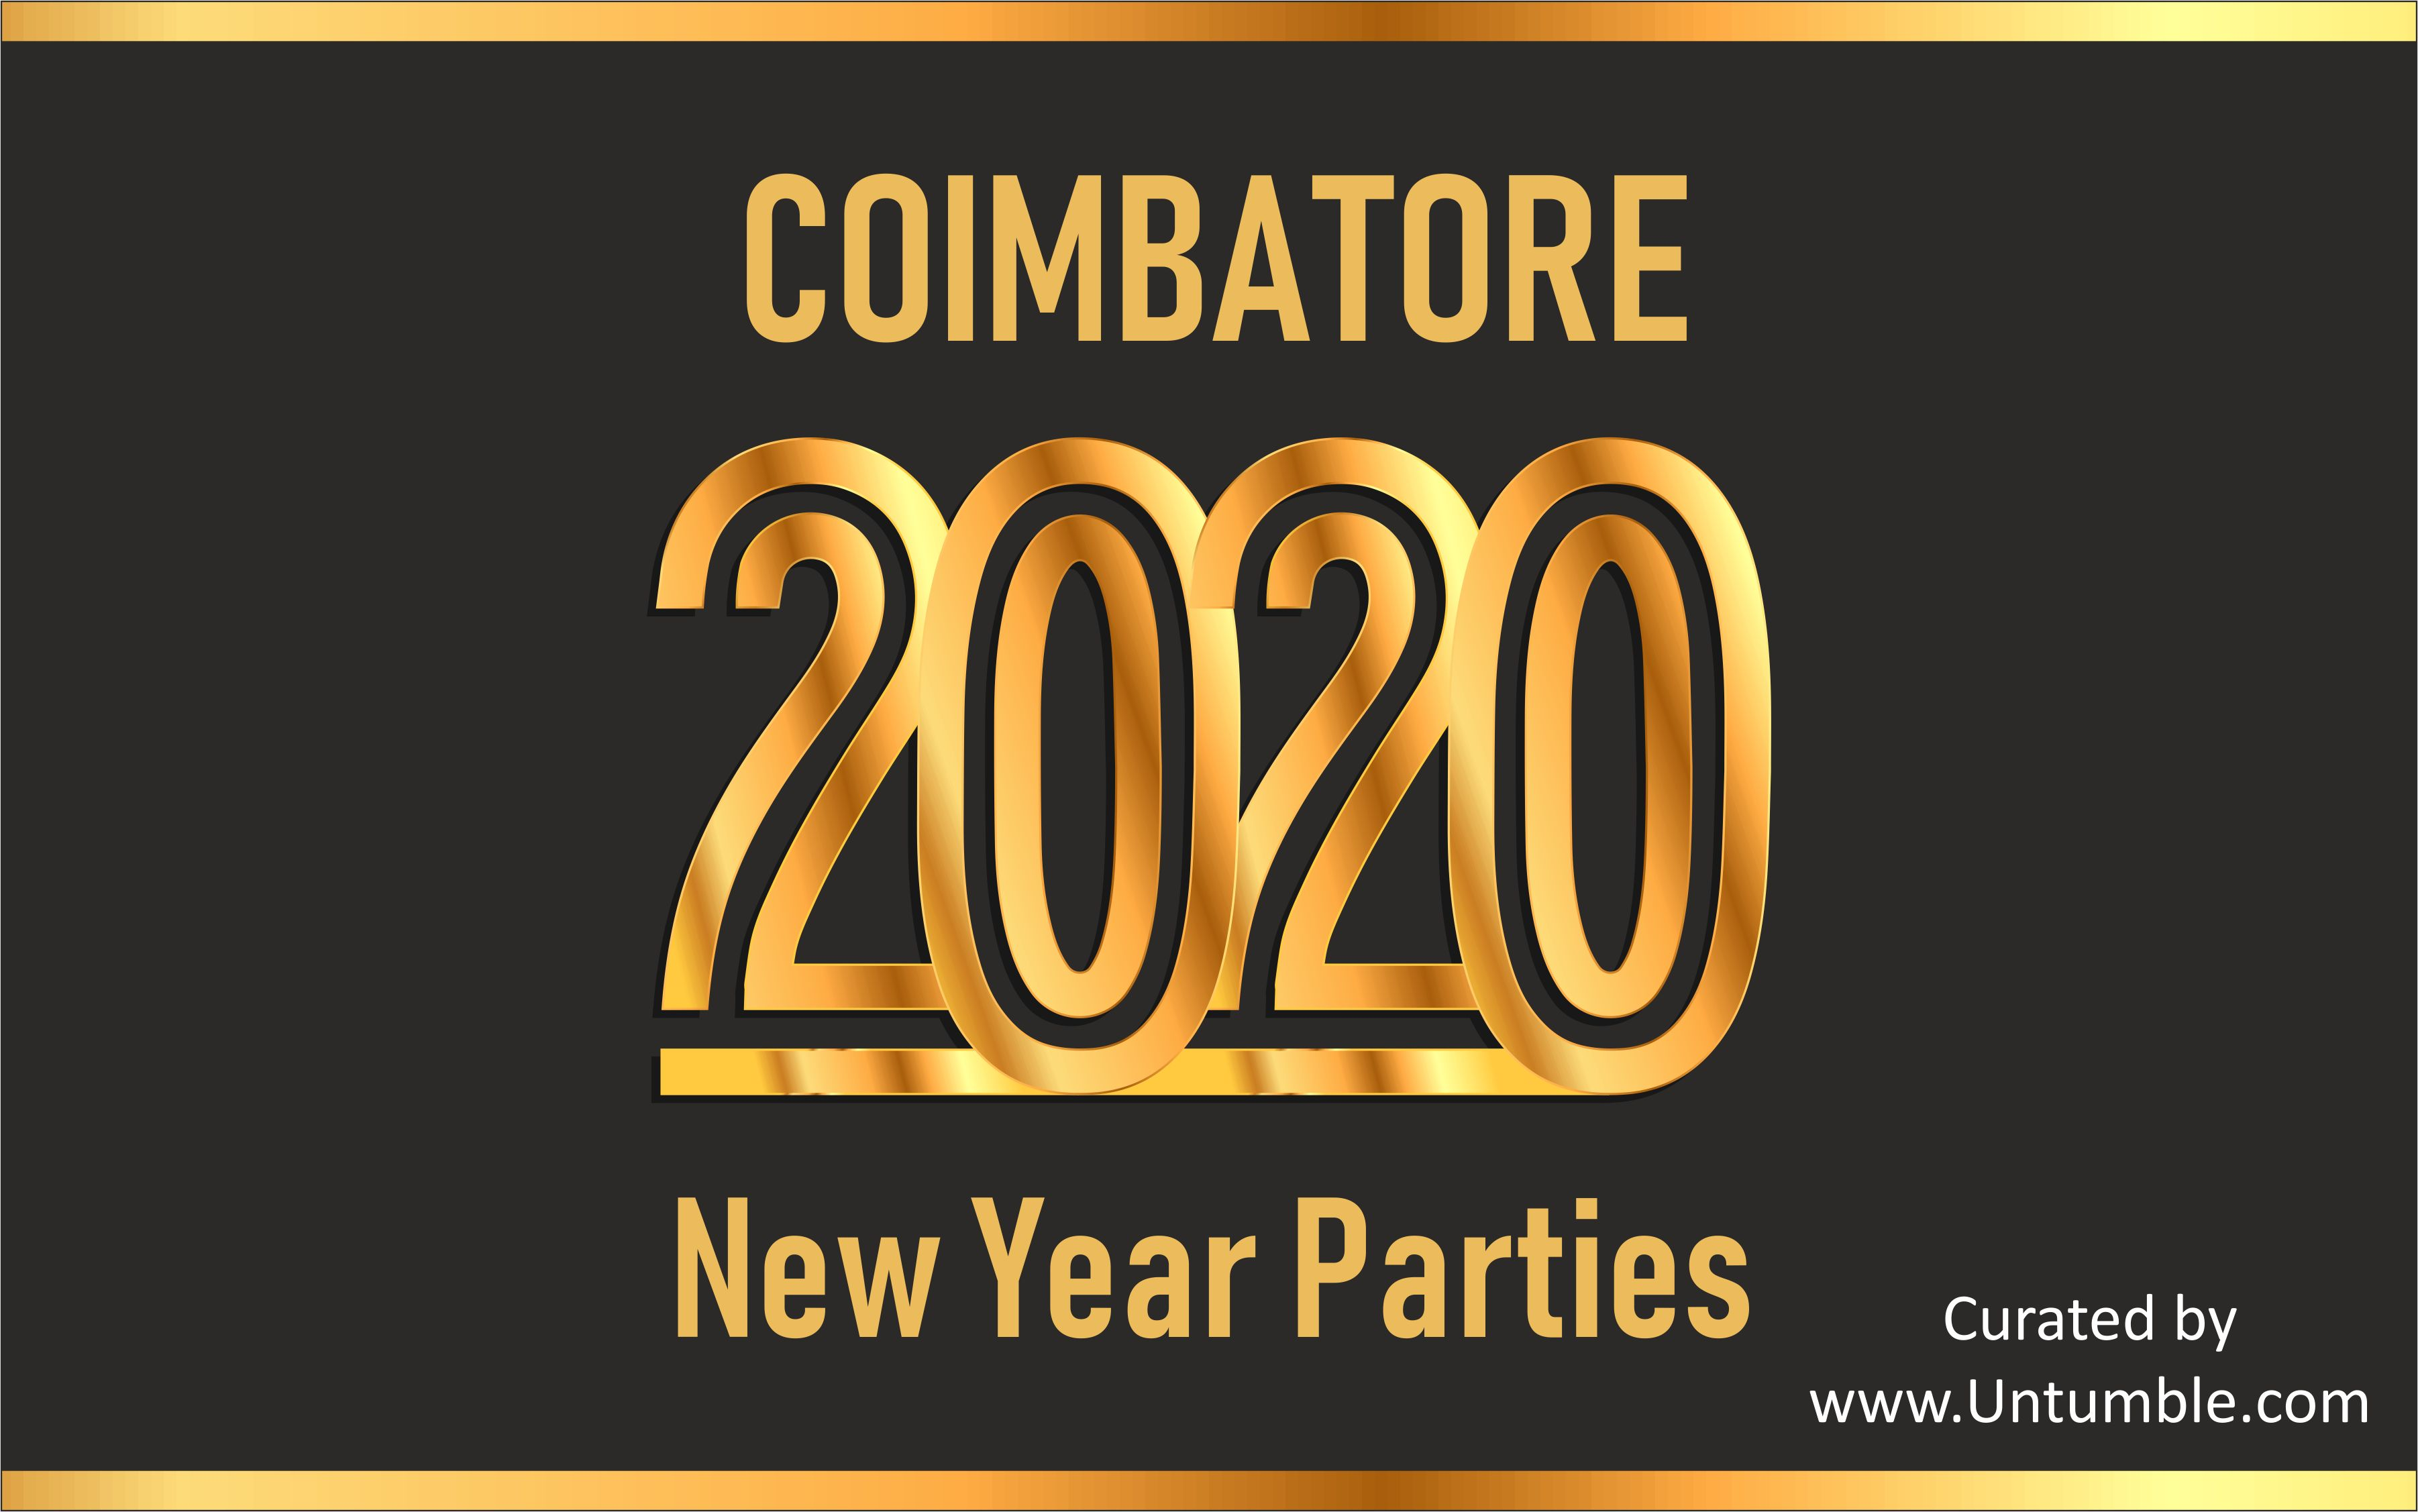 List of New Year 2020 Parties/Events in Coimbatore